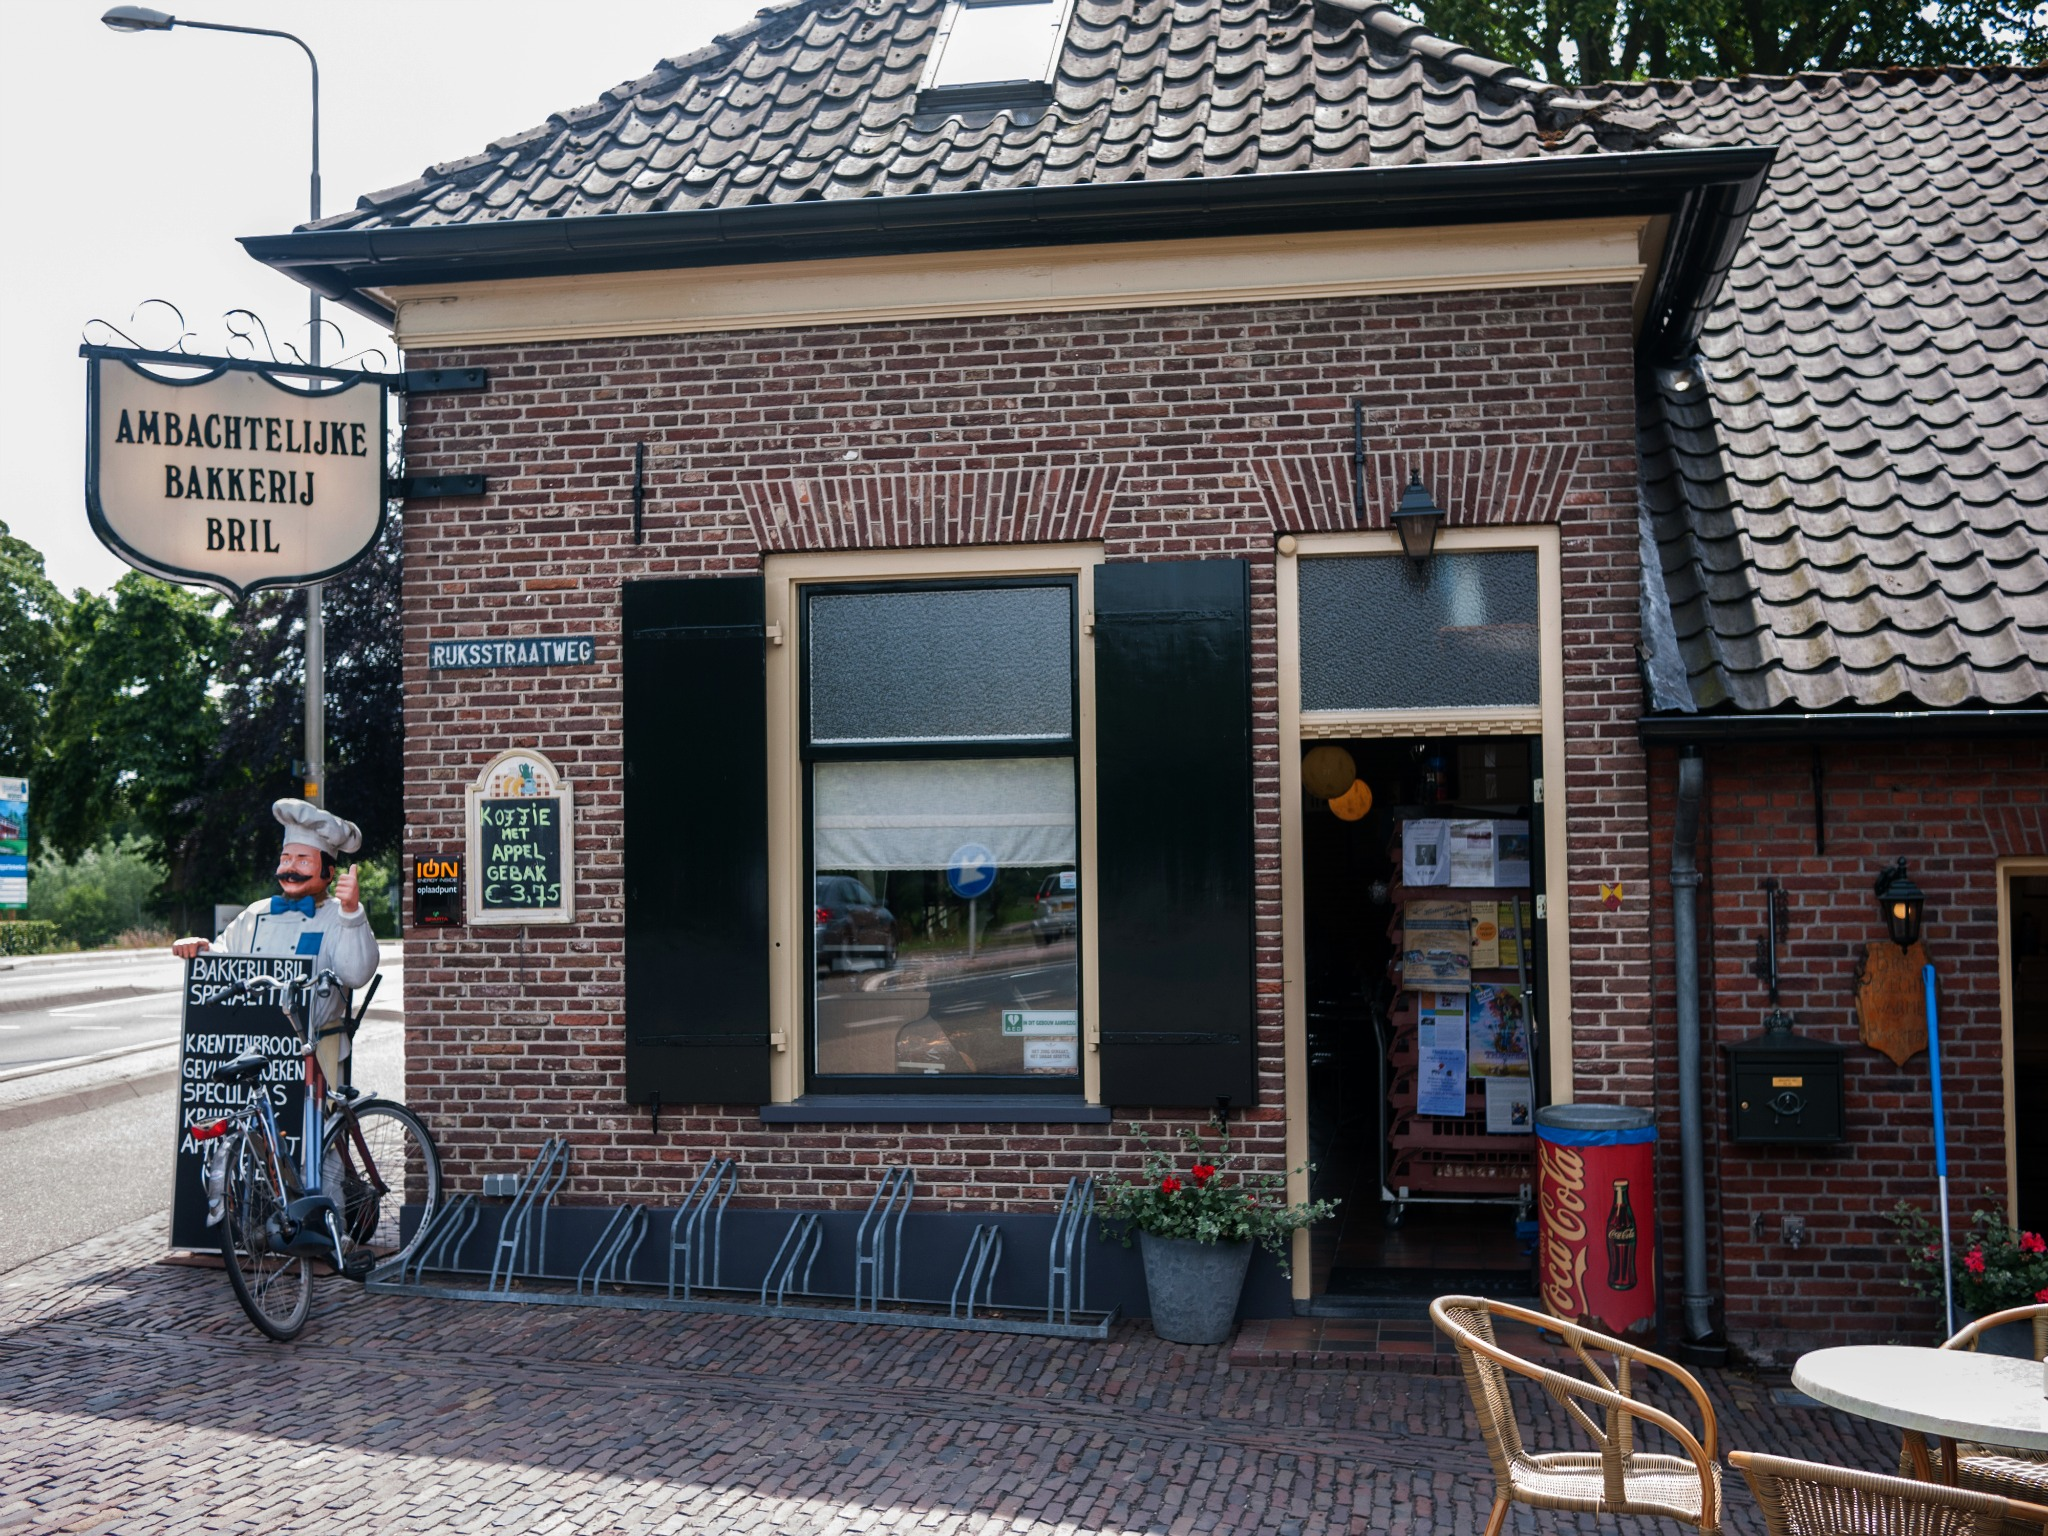 Bakkerij Bril: one of the most famous bakeries in the Netherlands!